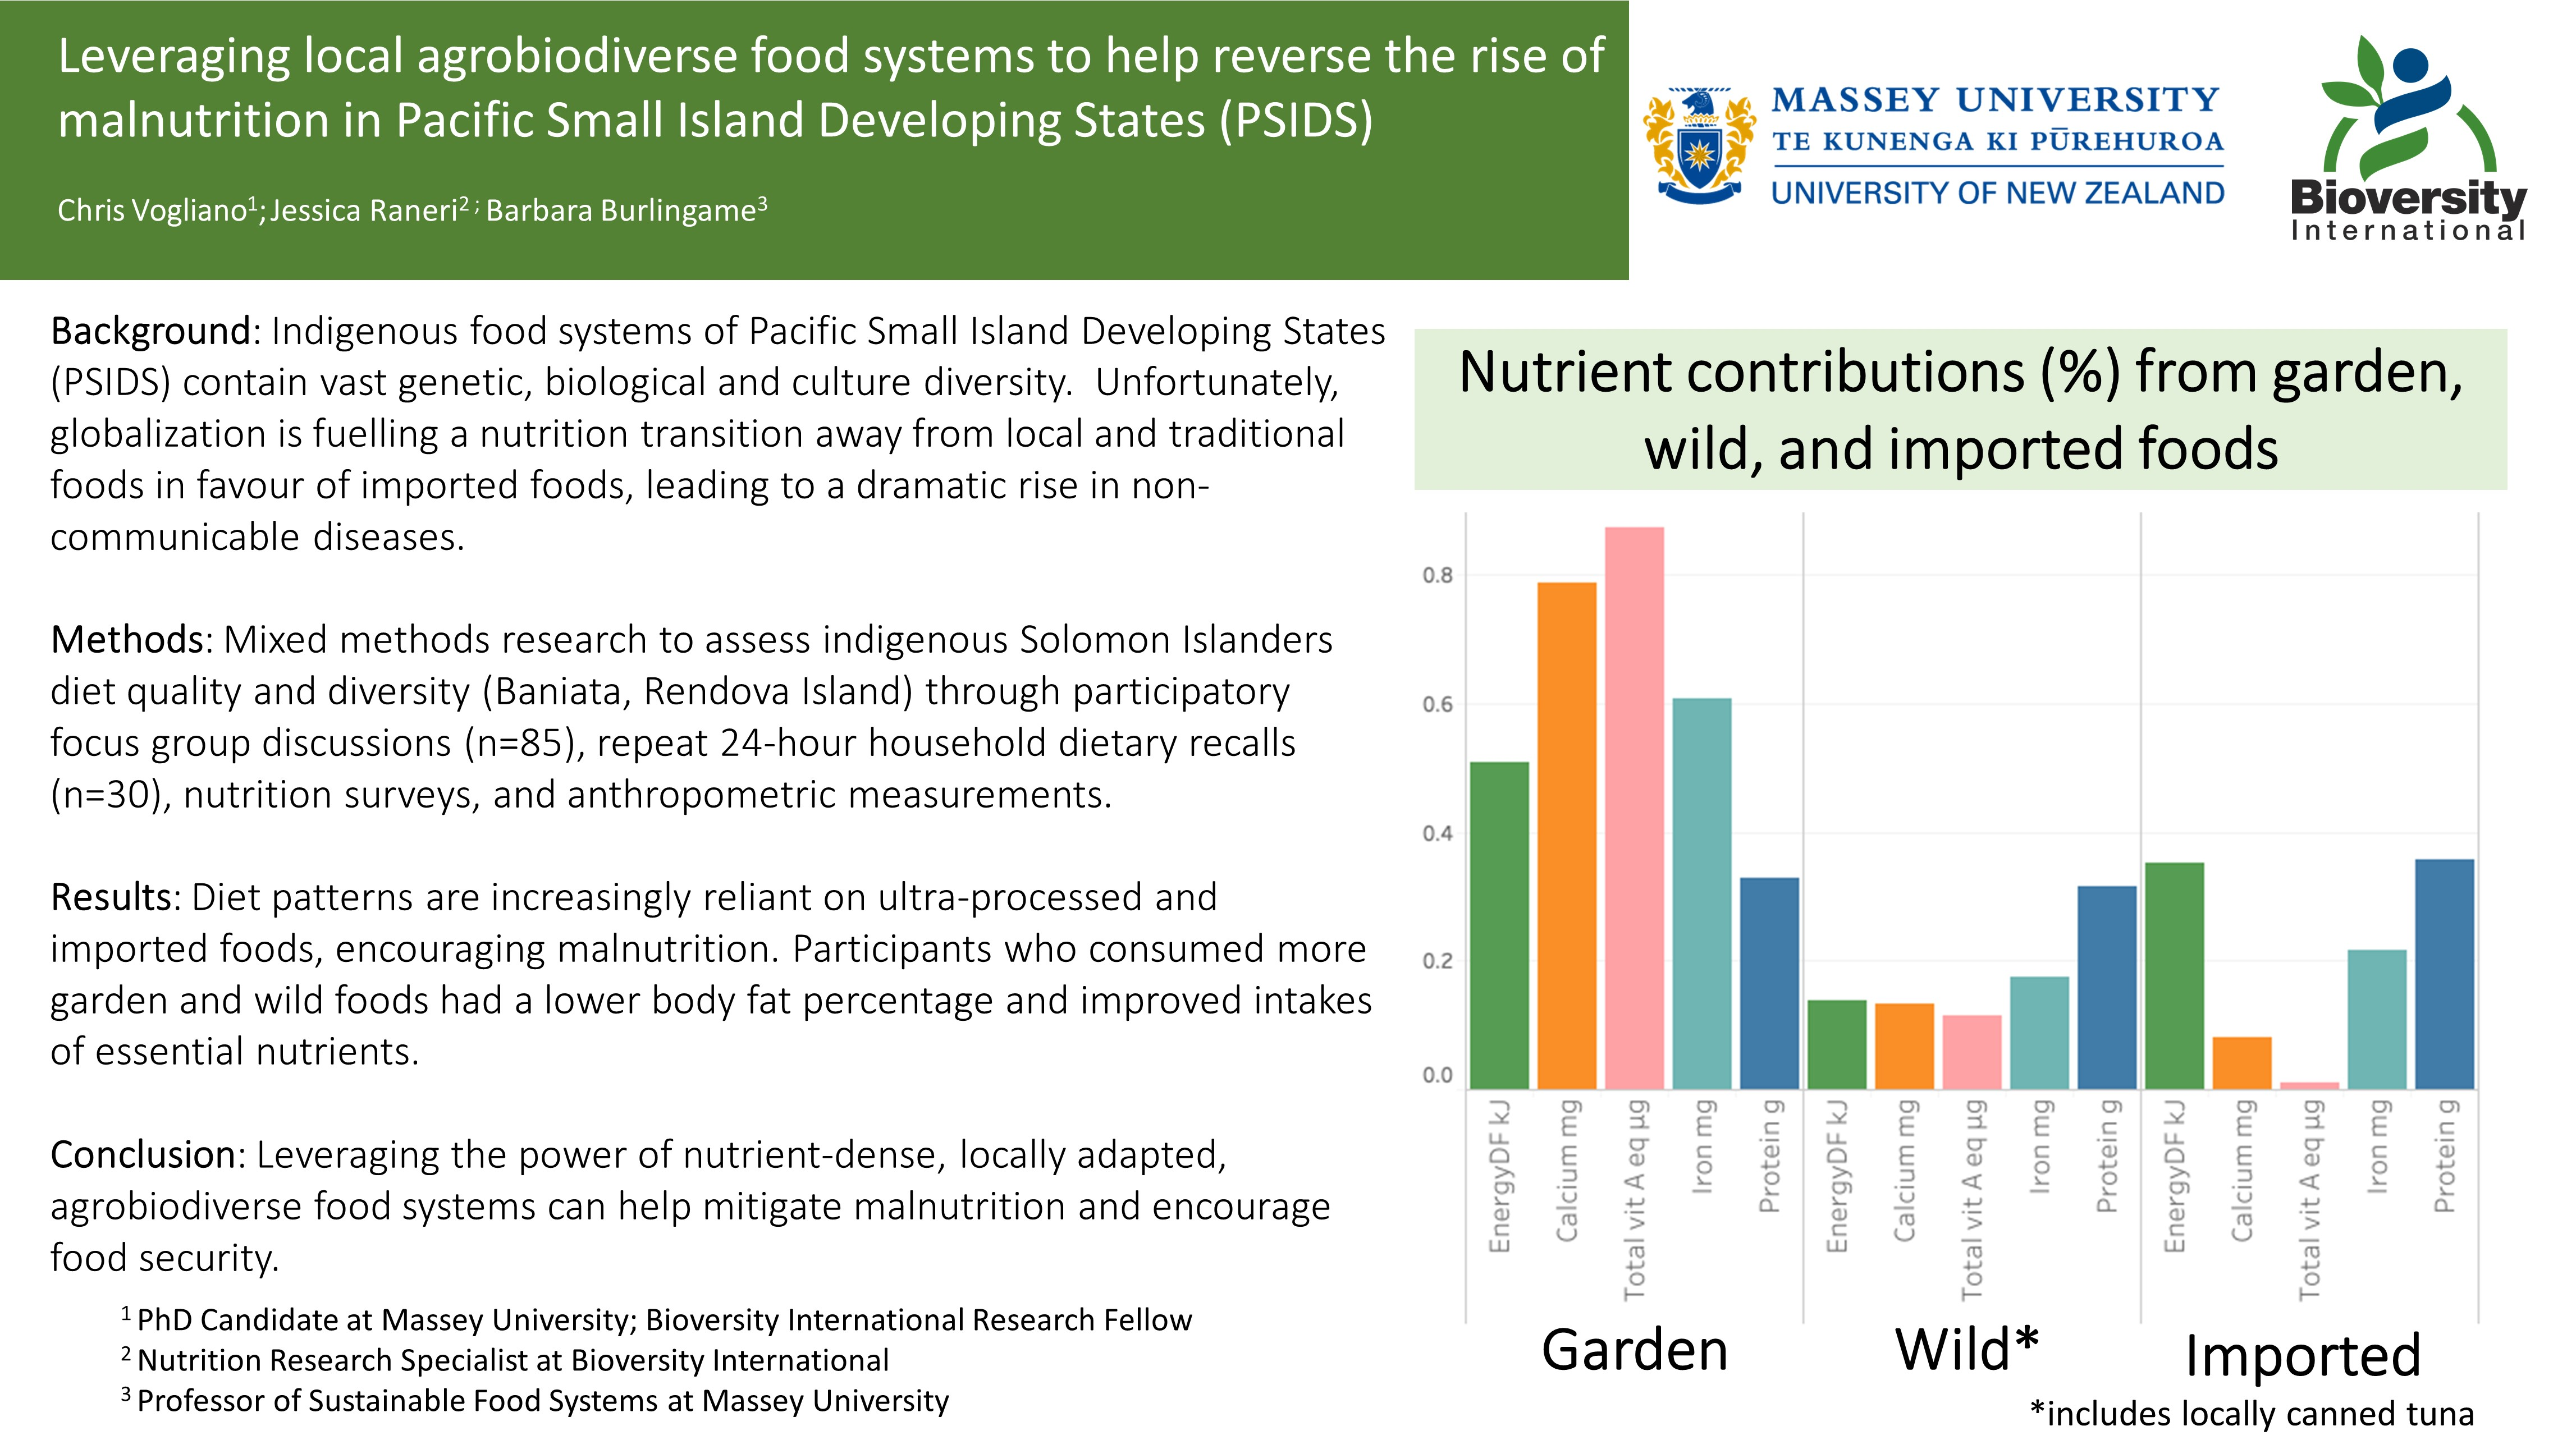 Leveraging Local Agrobiodiverse Food Systems to Help Reverse the Rise of Malnutrition in Pacific Small Island Developing States